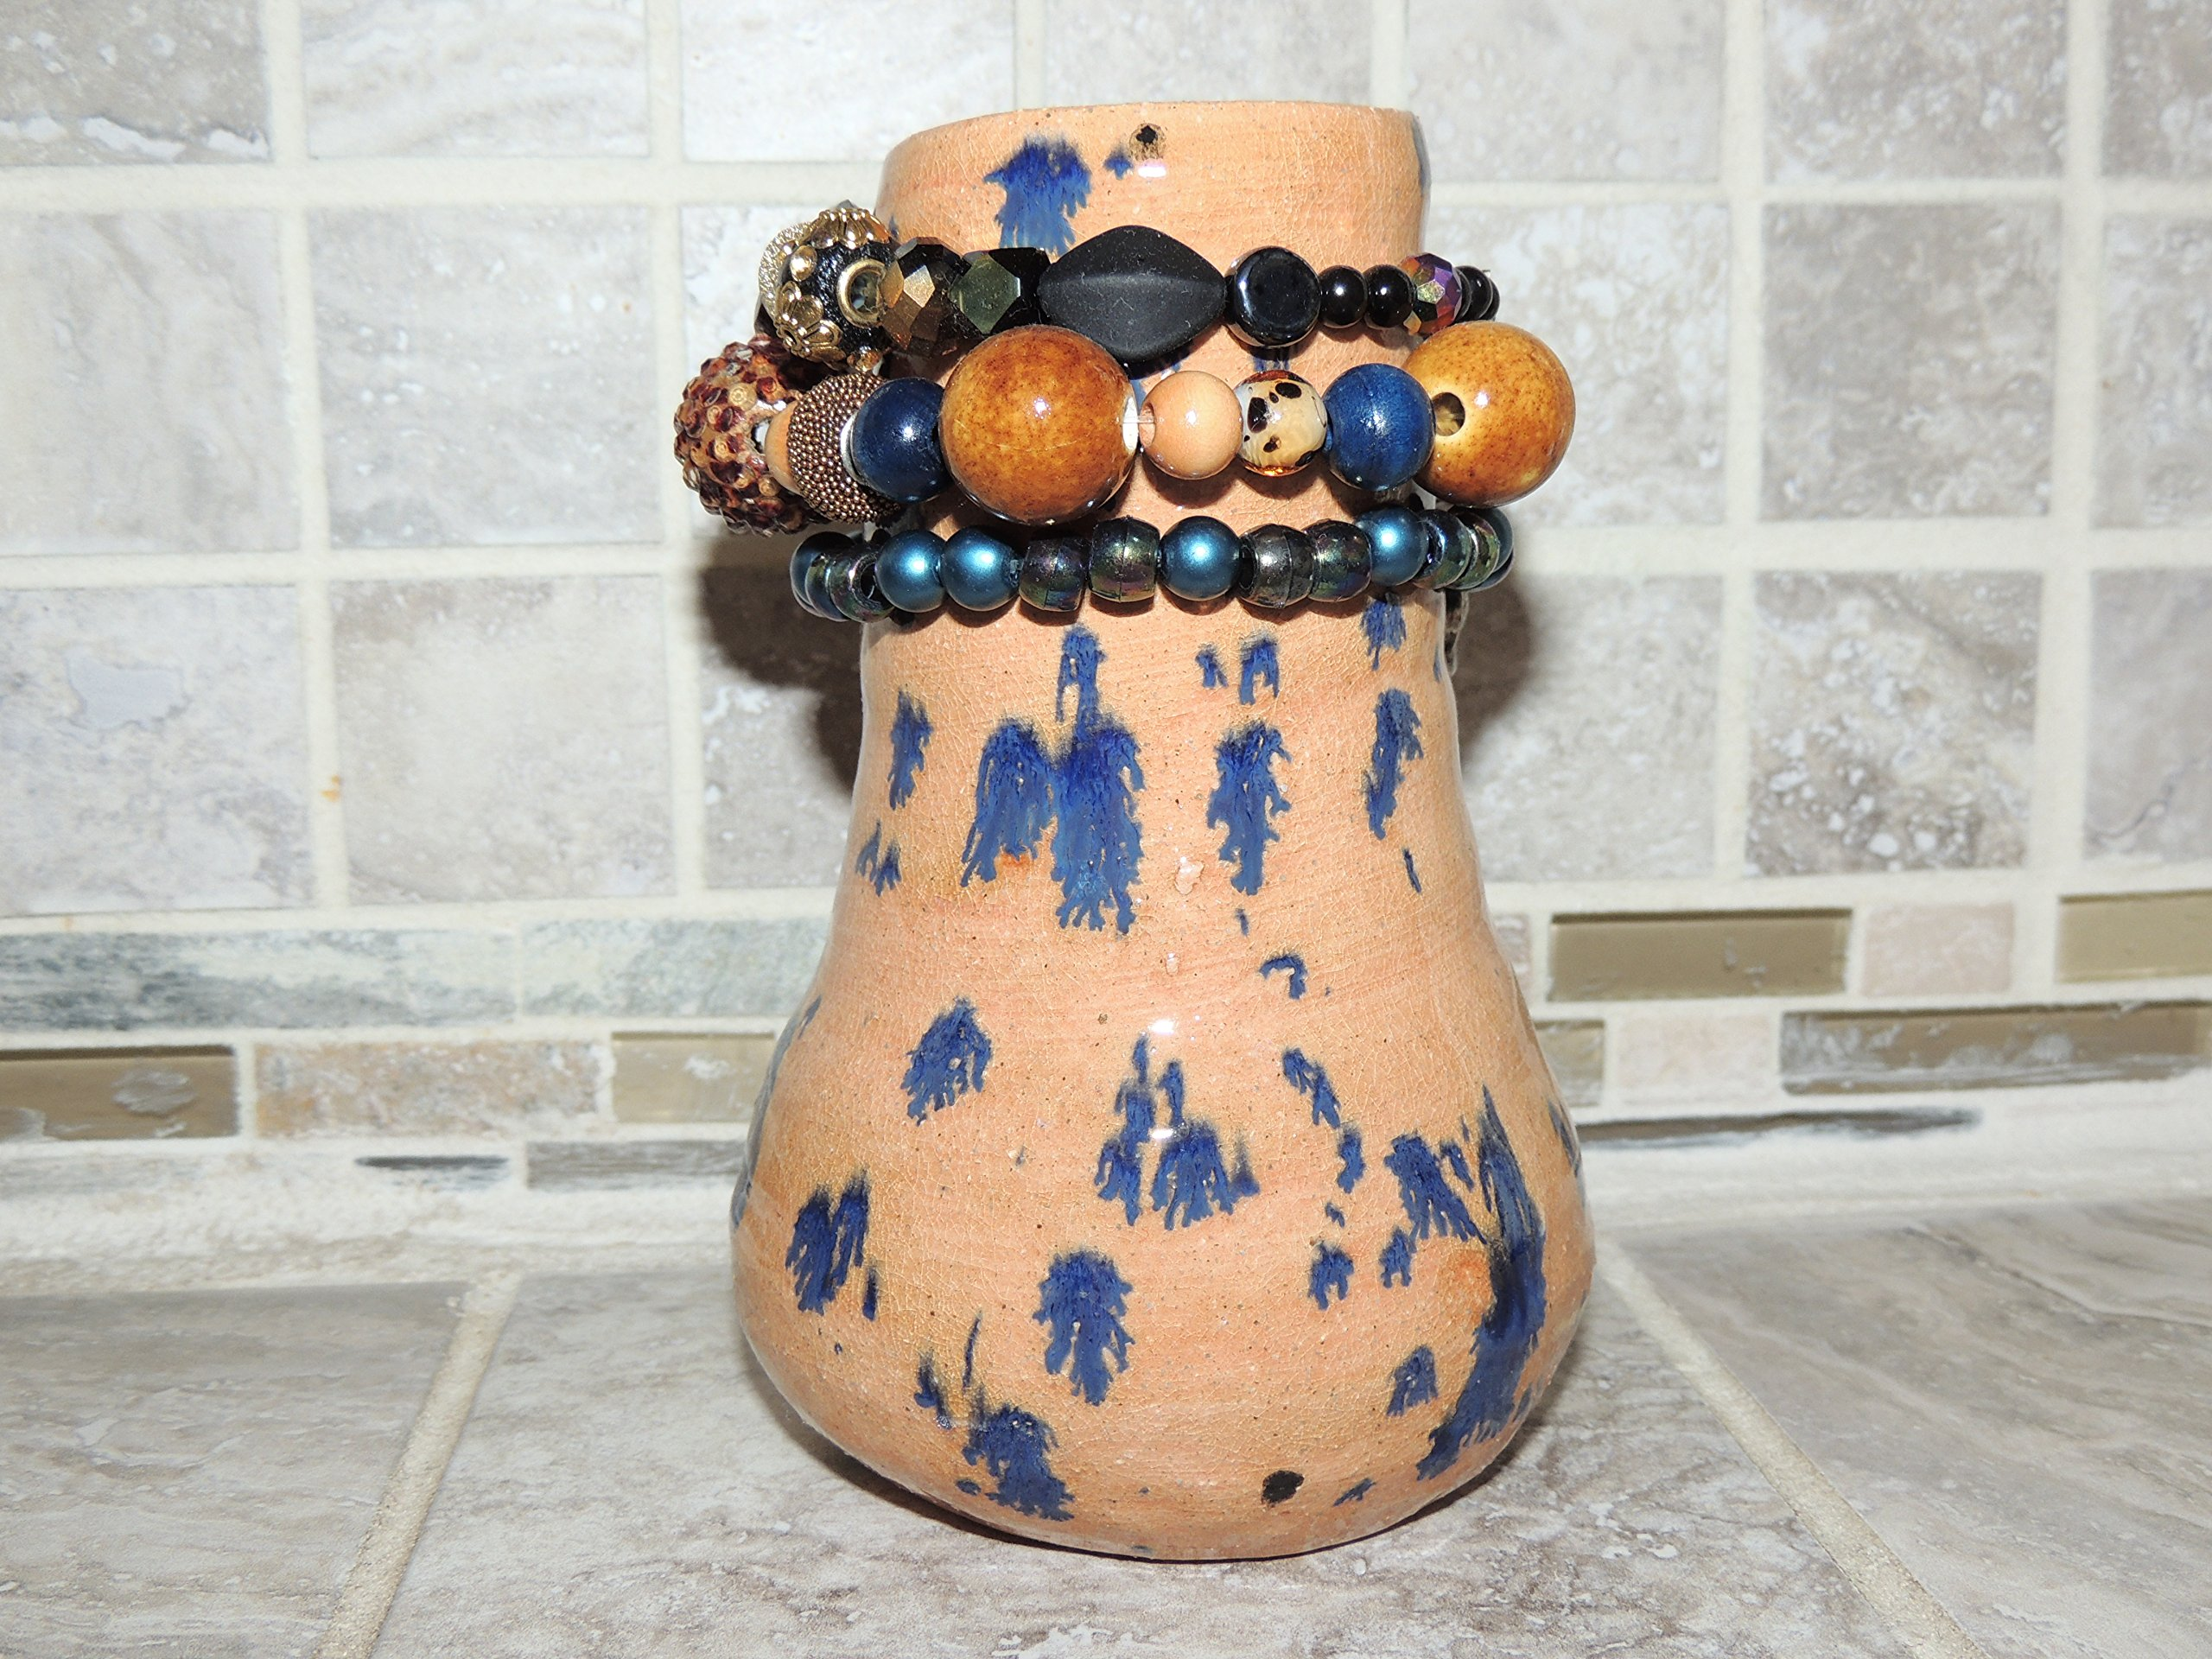 Hand Thrown Ceramic Vase. Beautiful Animal Print speckled glaze. Has hand strung beads around the top. Measures 4 x 6.